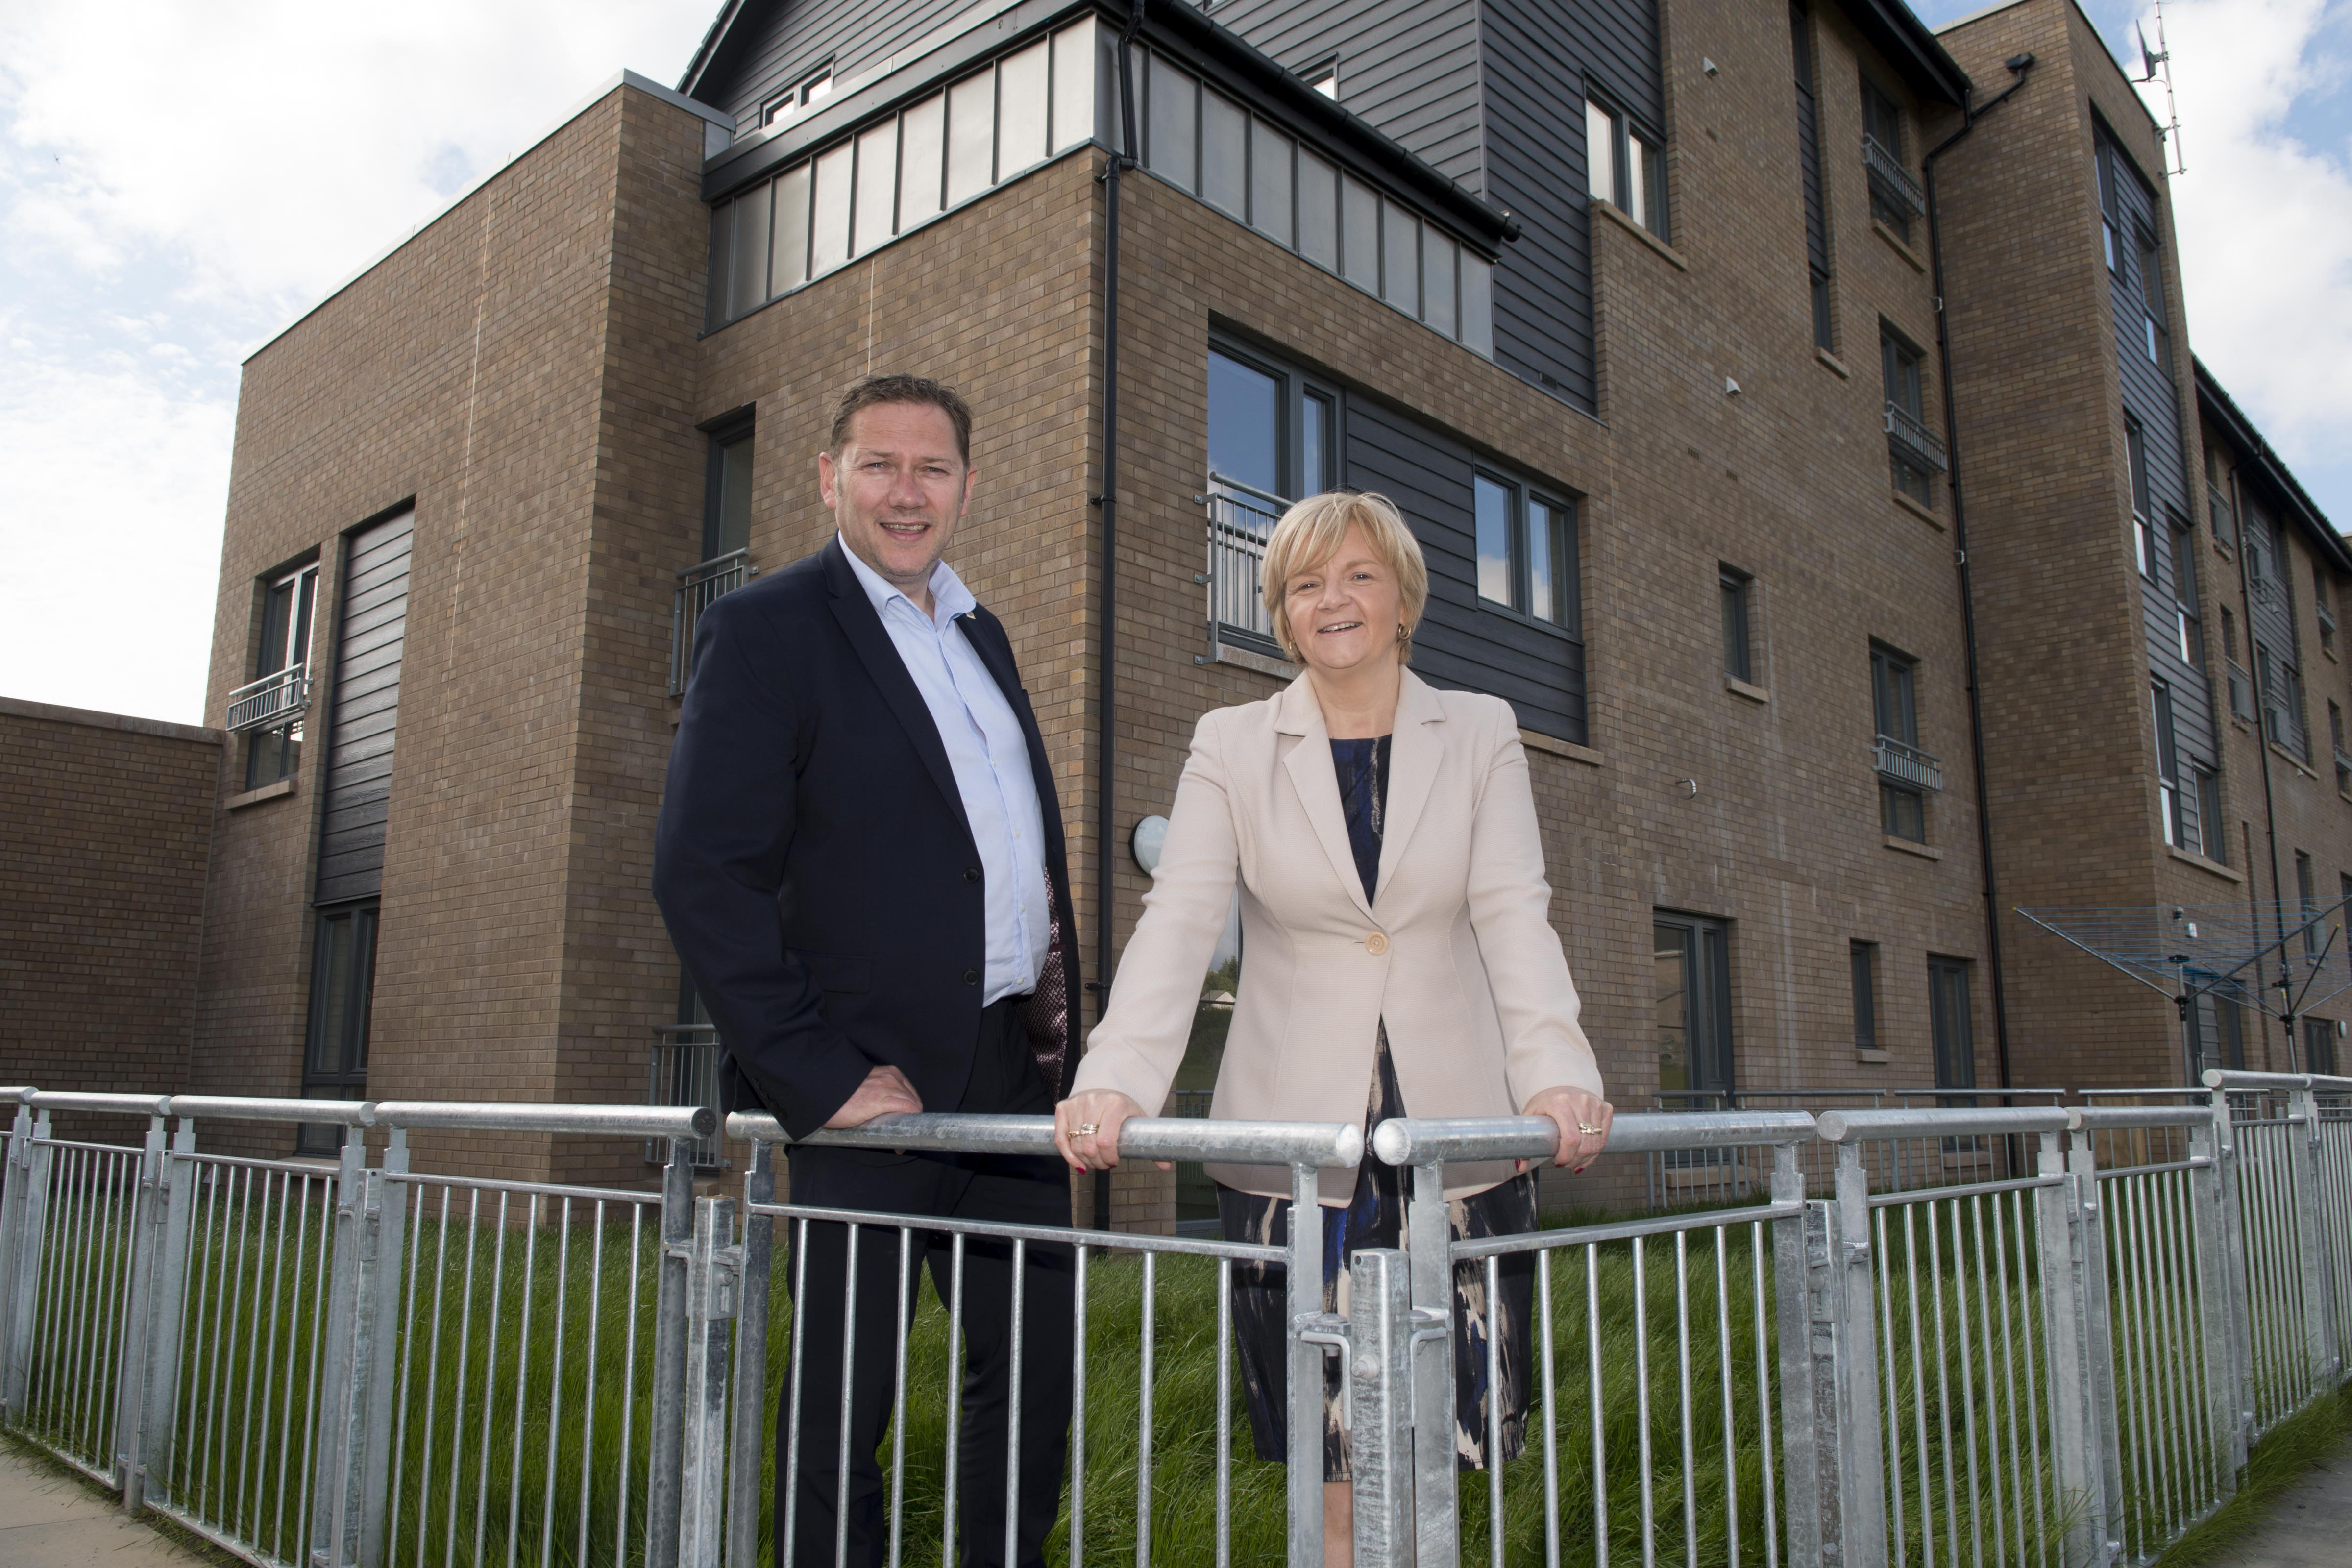 Councillors Douglas Lumsden and Jenny Laing at the Manor Walk site